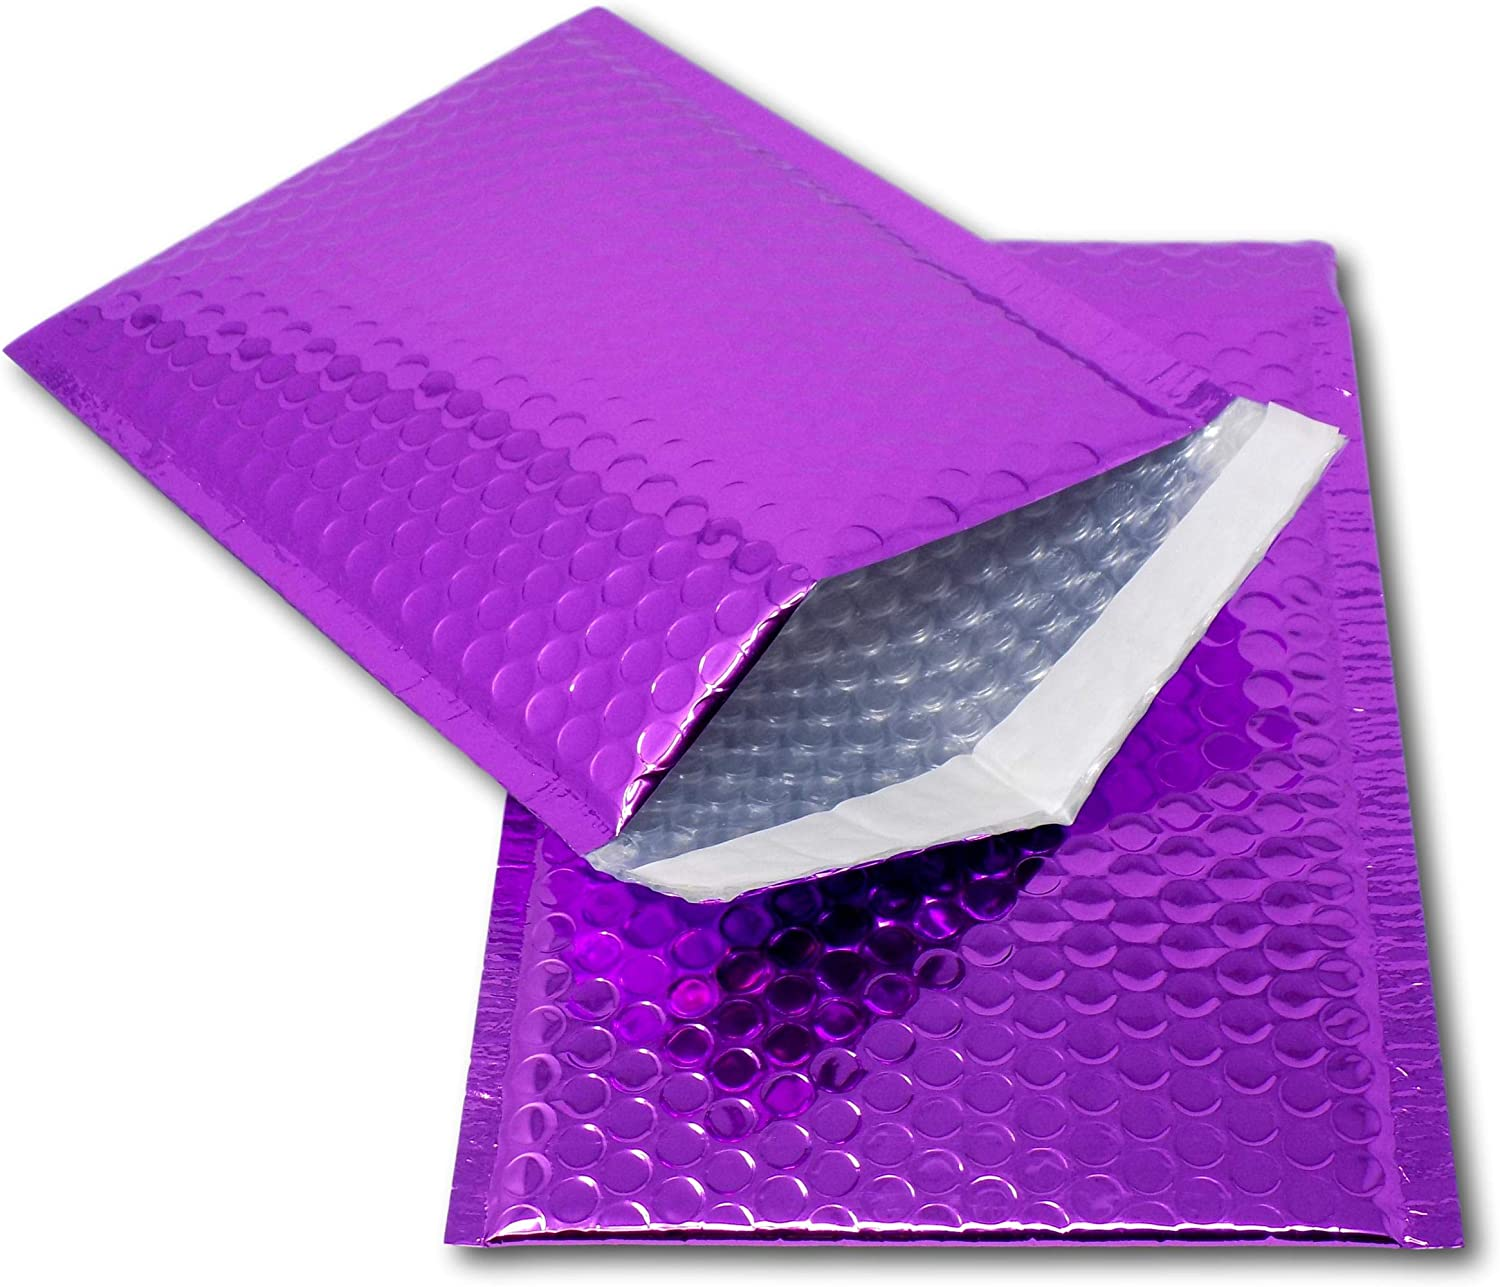 promotions or and alternative to gift wrap Perfect for marketing CD - 165mm x 165mm EPOSGEAR 5 Hot Pink Shiny Metallic Foil Bubble Padded Bag Mailing Envelopes